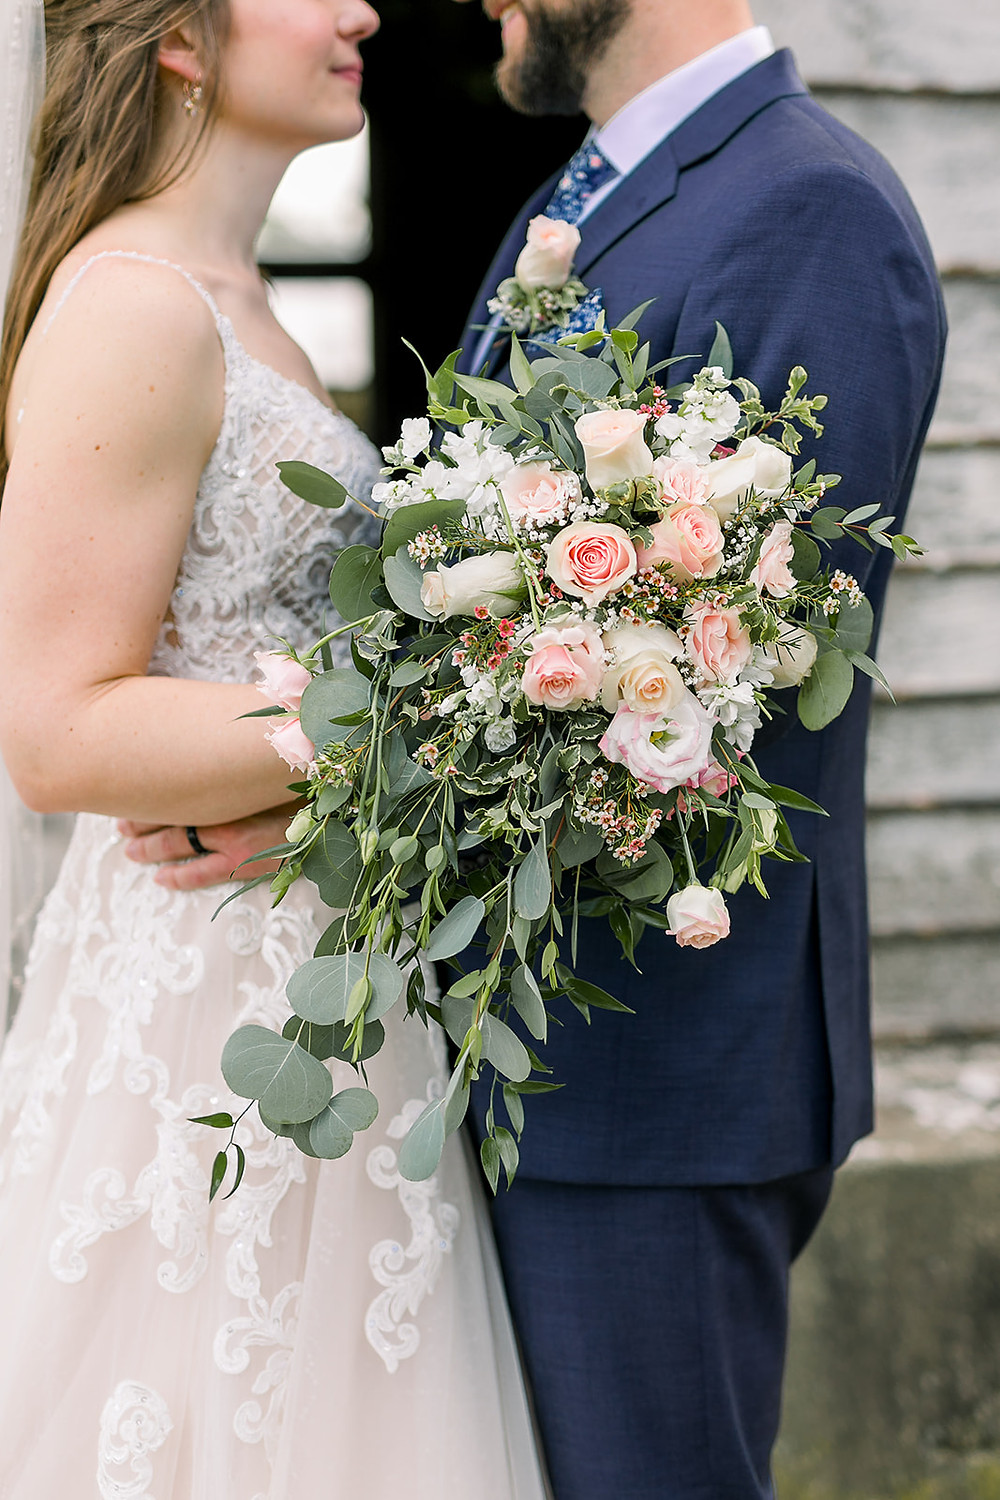 Newlyweds look at each other and pose for a photo. Bridal bouquet w/ peach & white roses, assorted greenery.